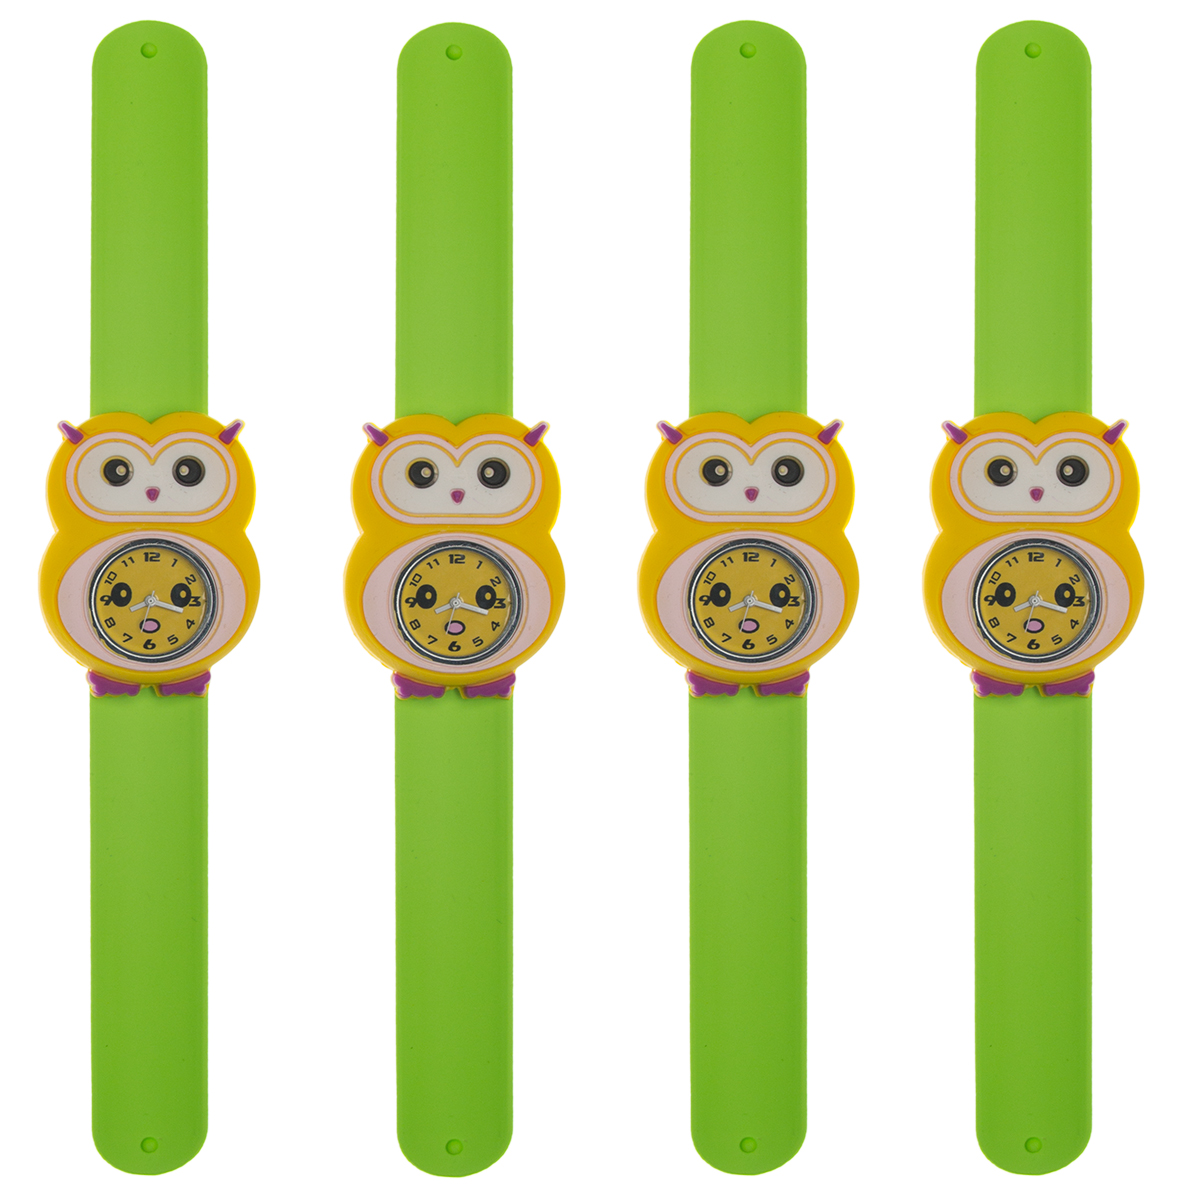 4 Pack Of Animals Slap Wrist Watches For Kids Rubber Snap Band Bracelet Analog Fun, Boys and Girls